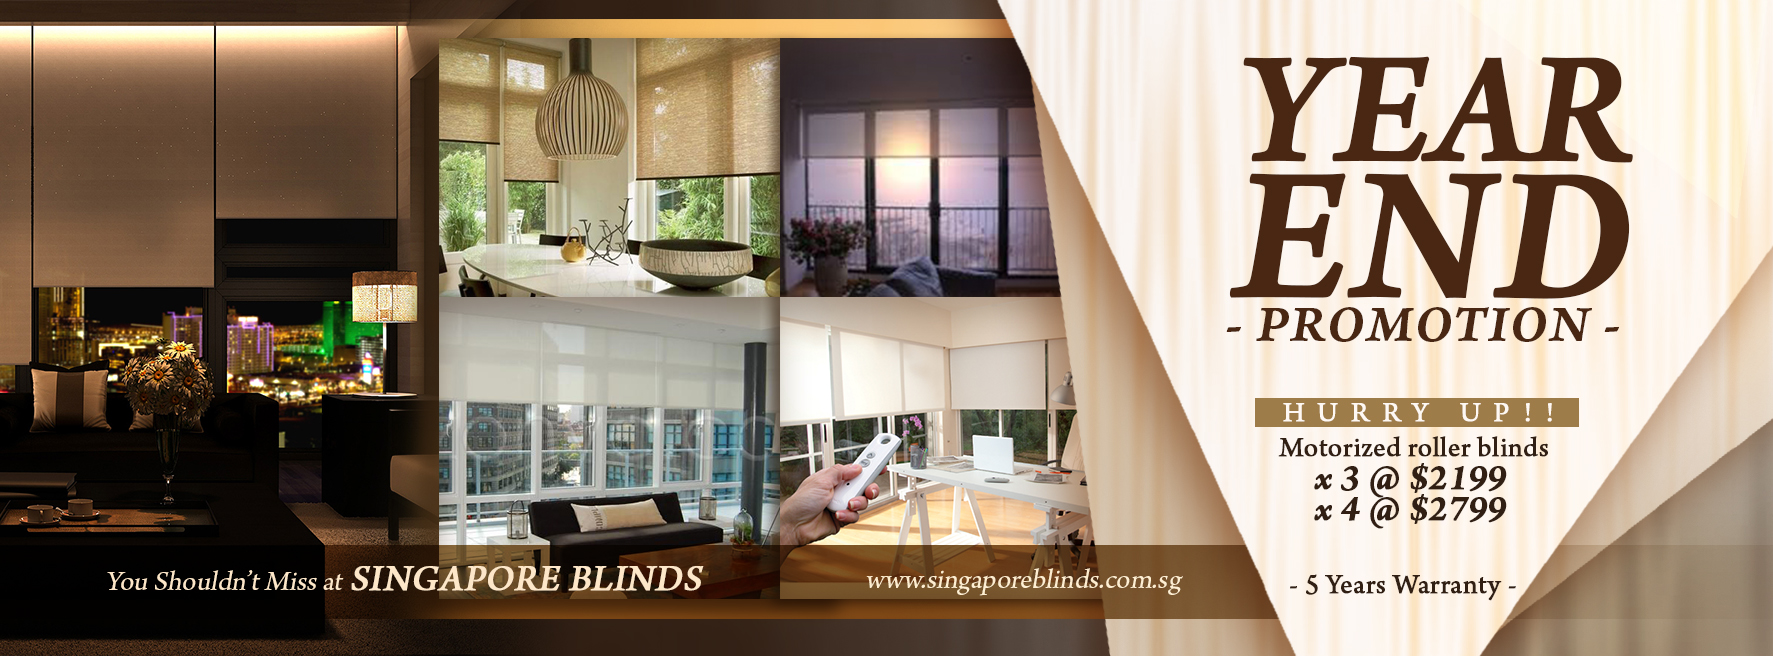 Motorized Roller Blinds Singapore Blindssingapore Blinds